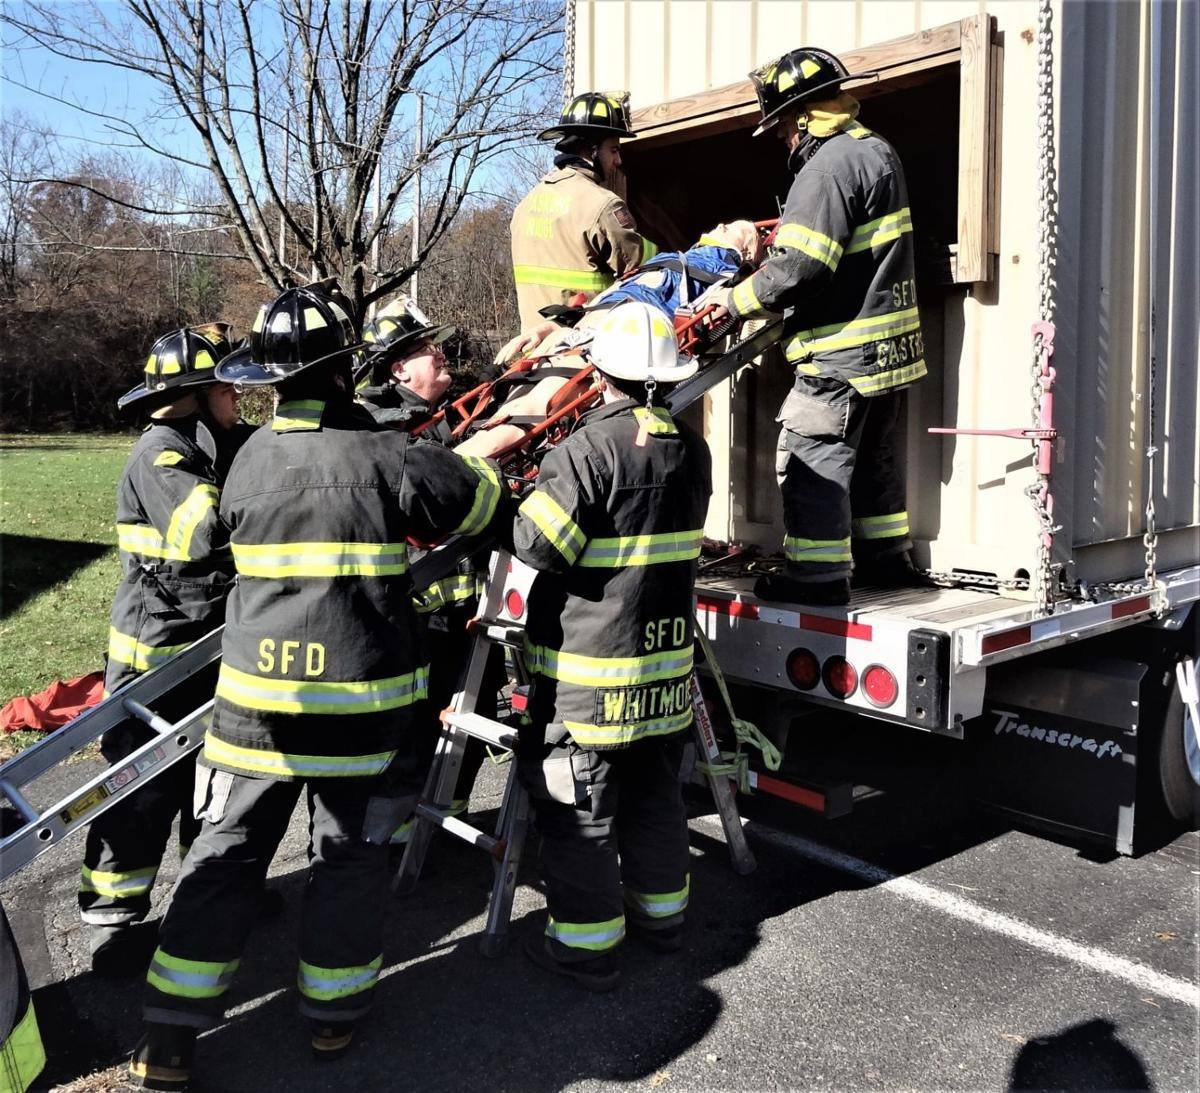 Stirling Fire participates in specialized passenger train rescue training